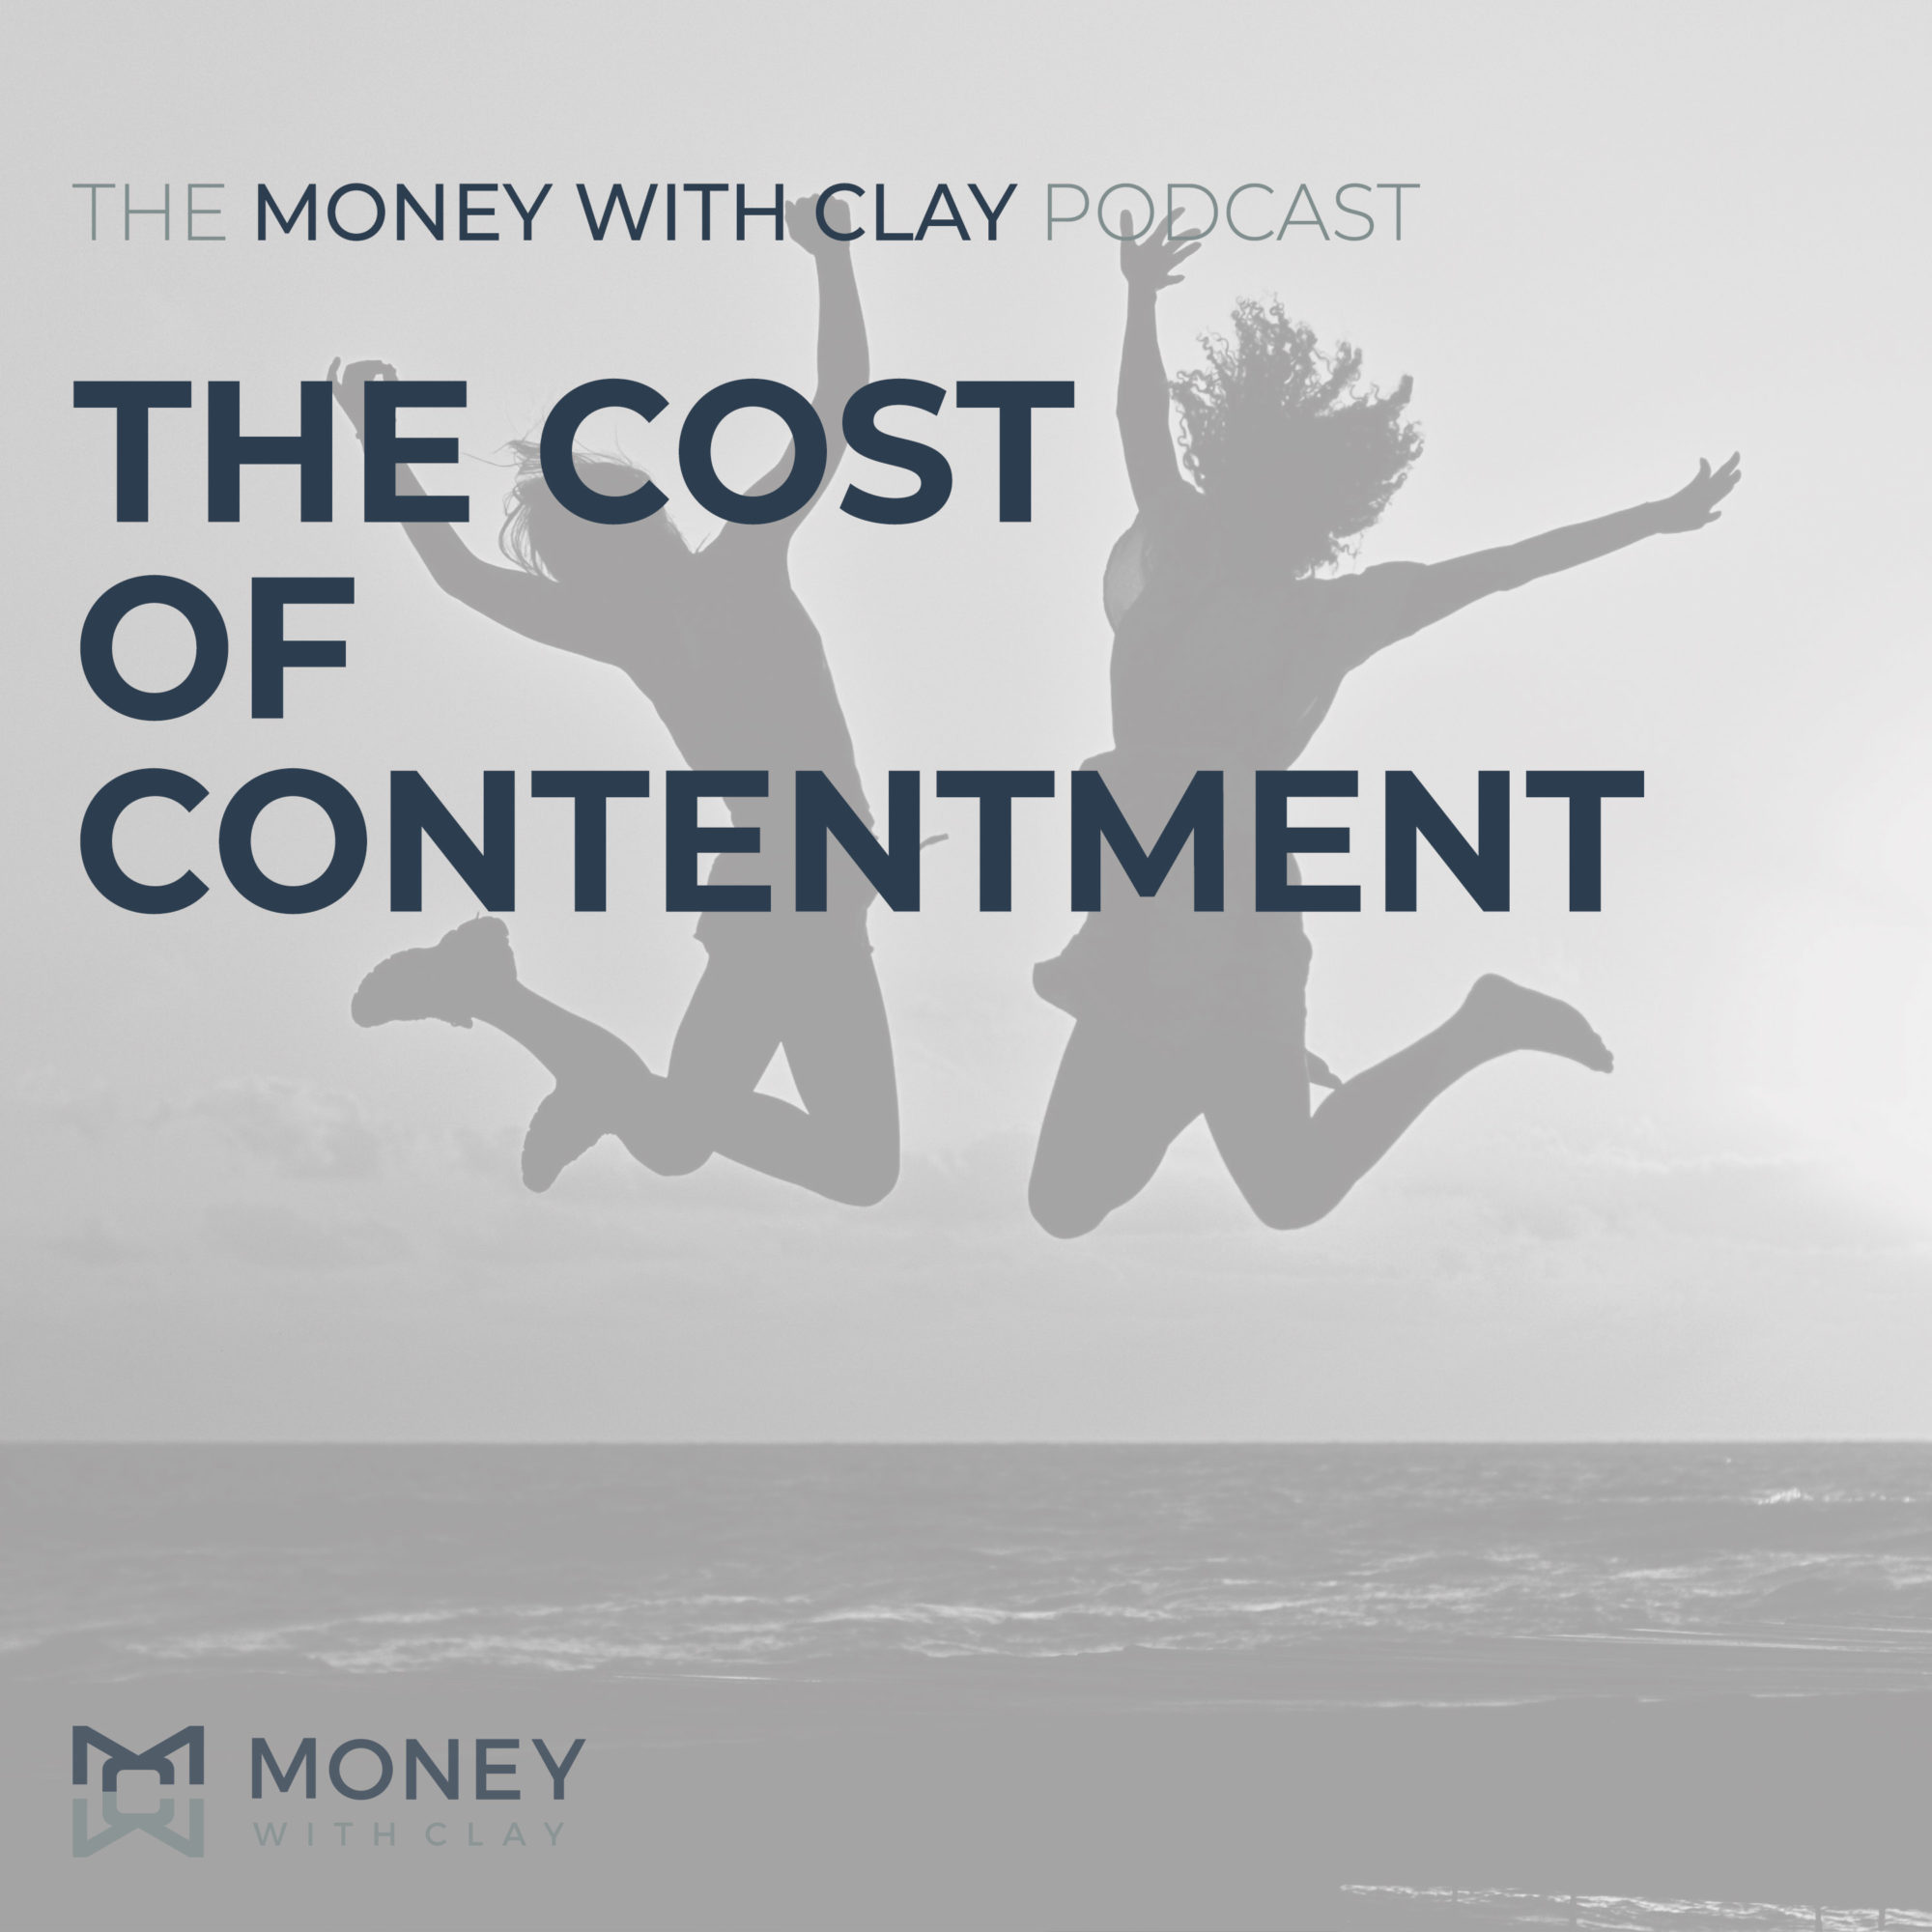 The Cost of Contentment